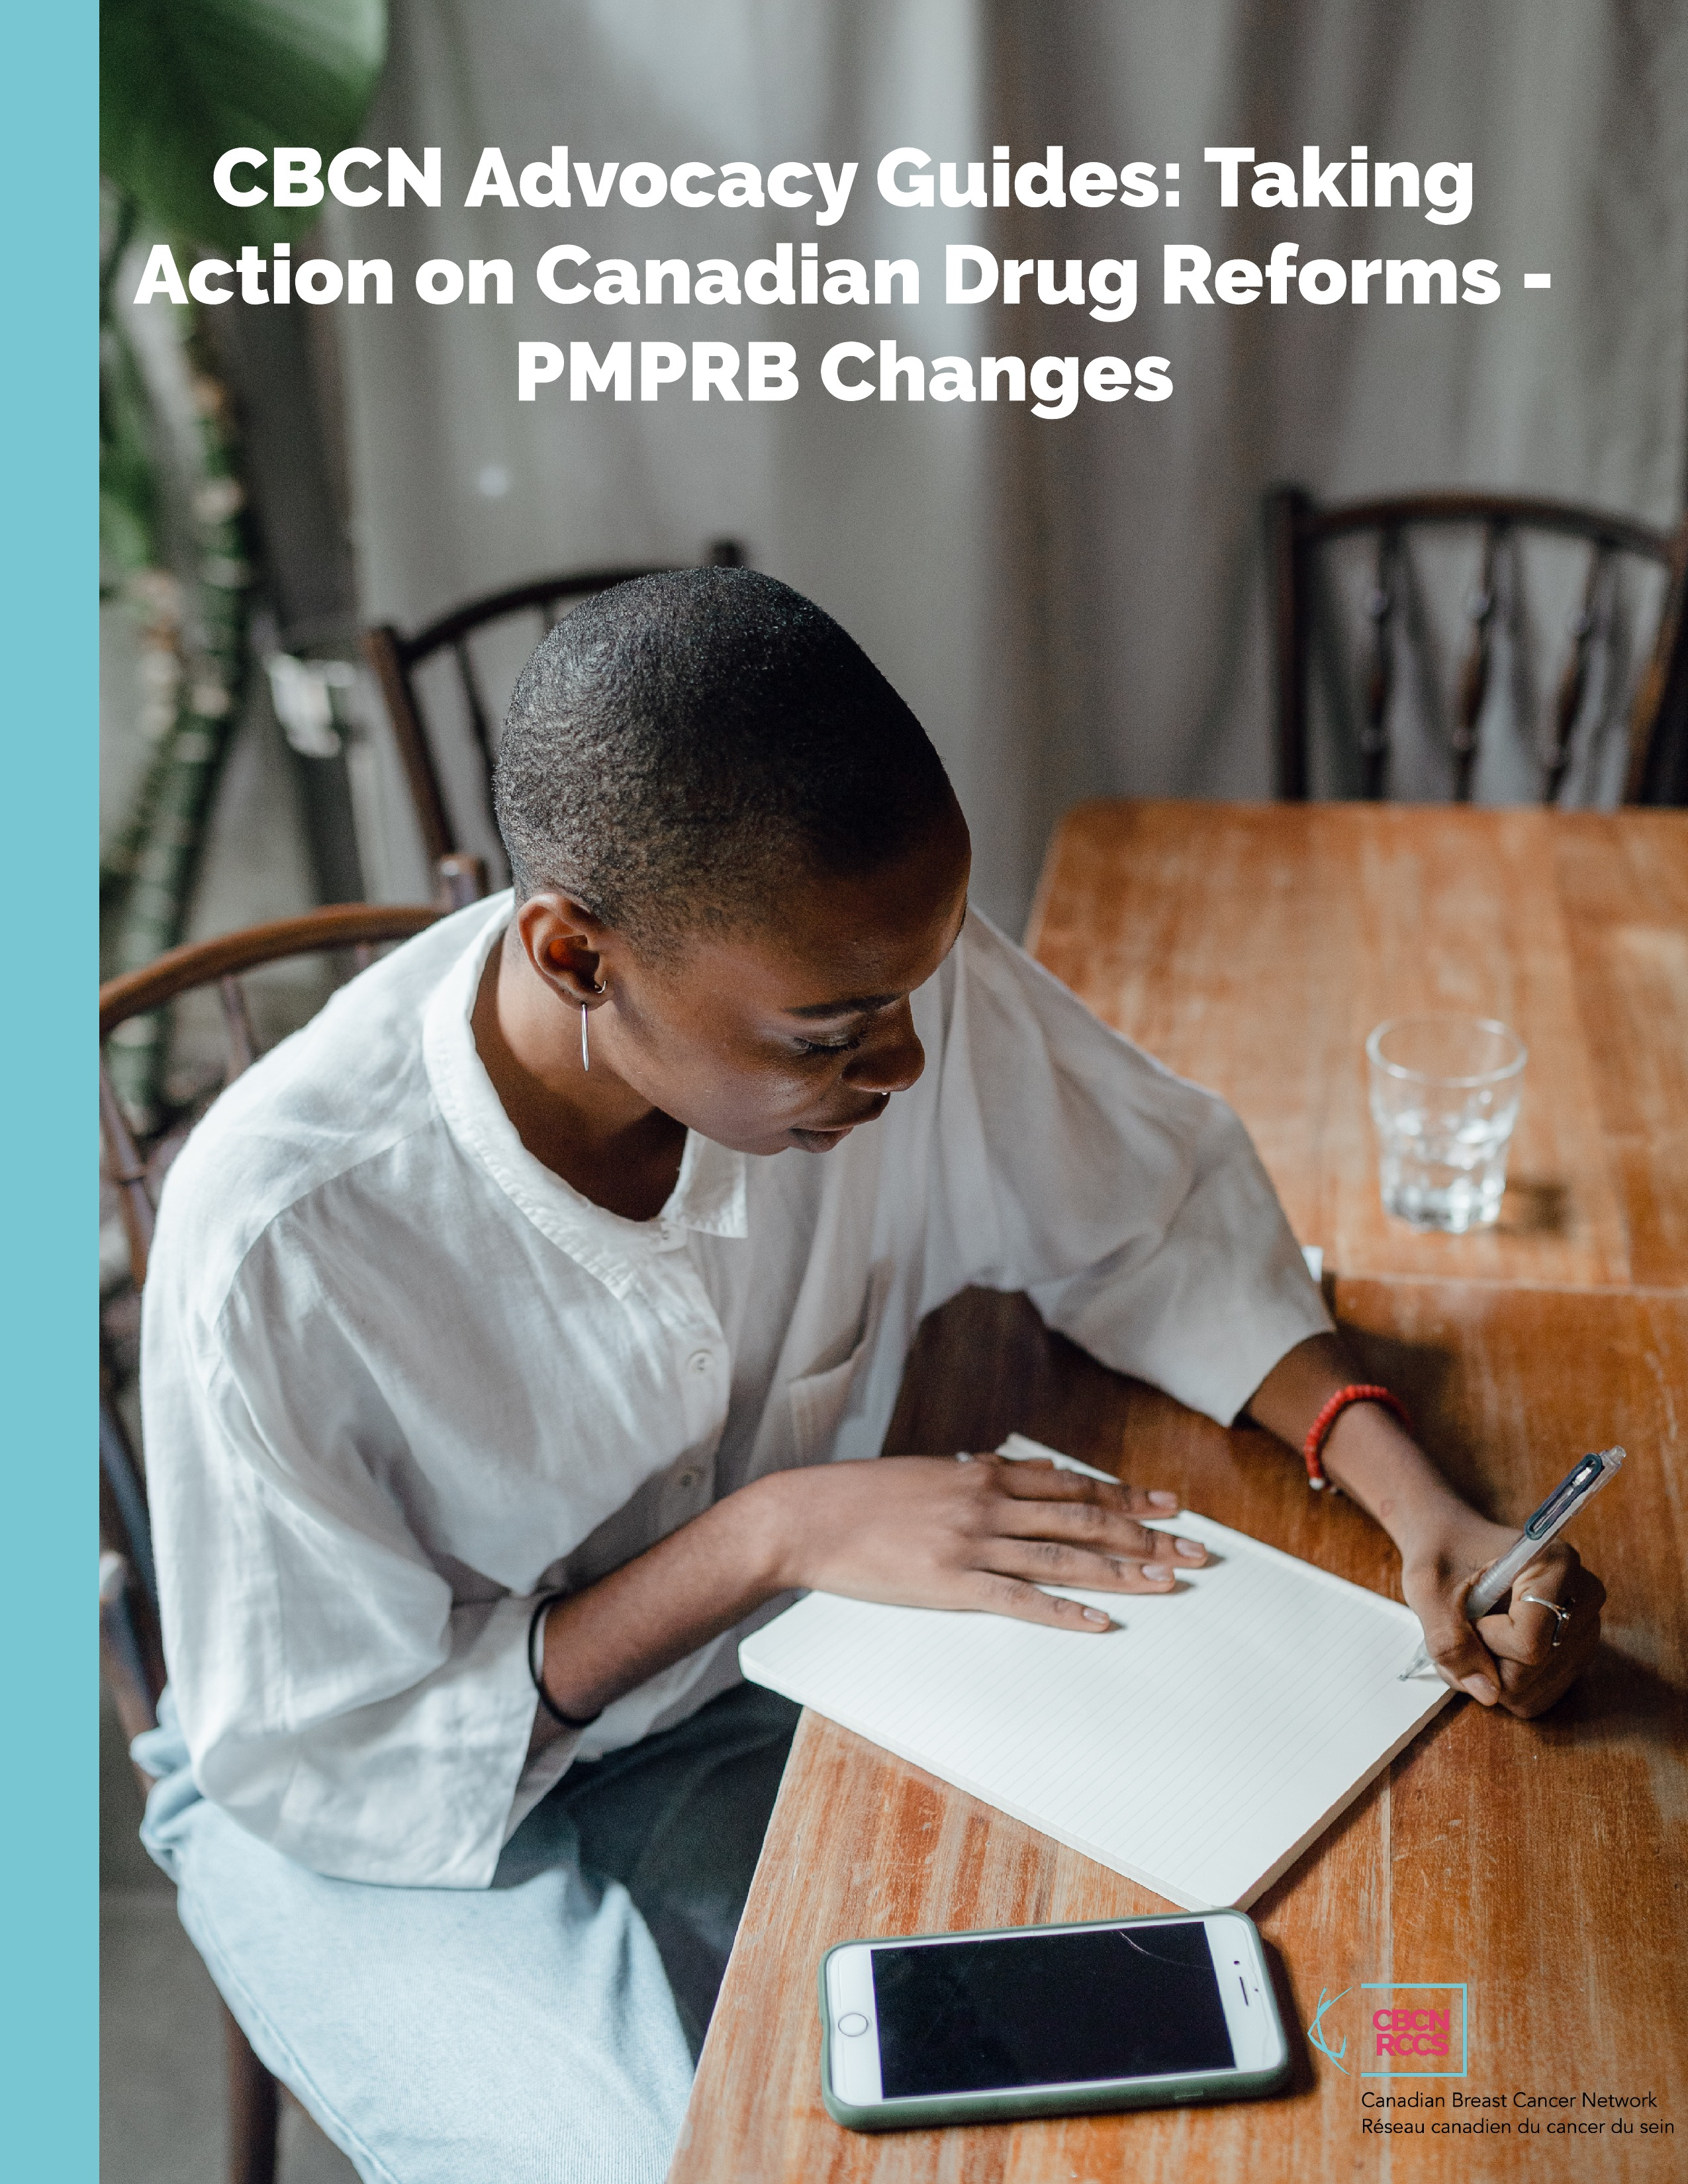 Taking Action on Canadian Drug Reforms - PMPRB Changes